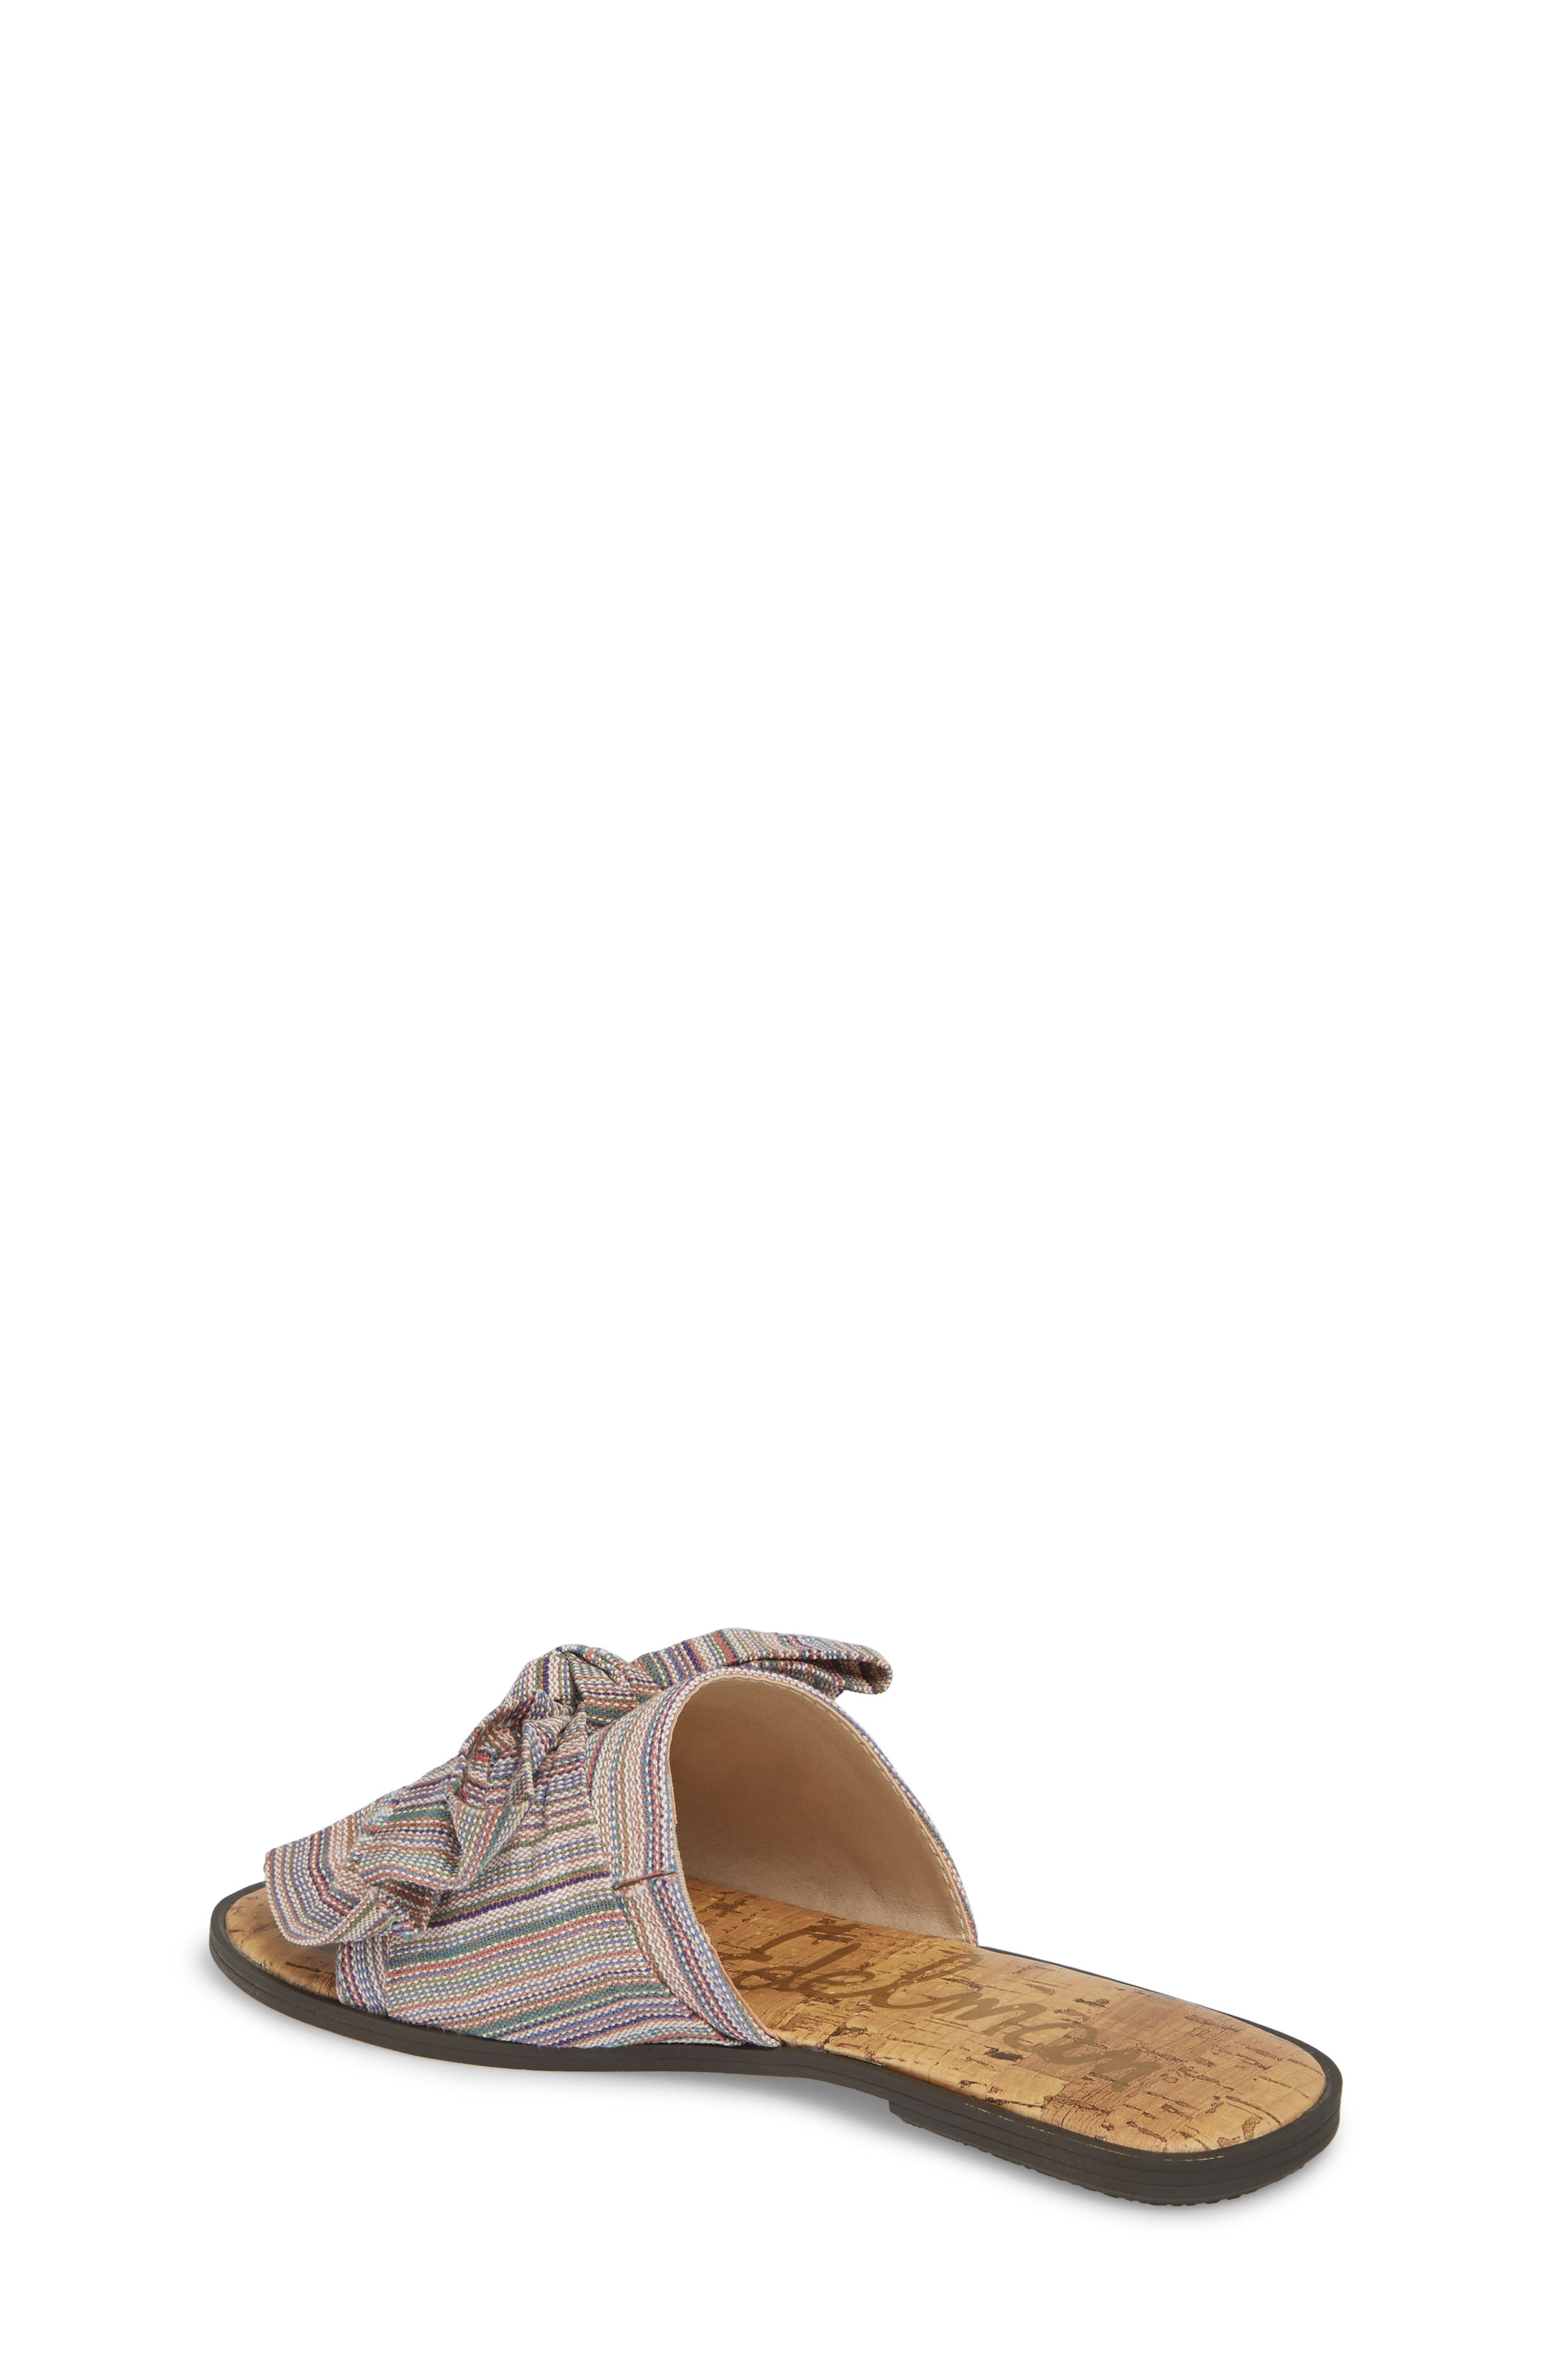 Gigi Bow Faux Leather Sandal,                             Alternate thumbnail 2, color,                             200